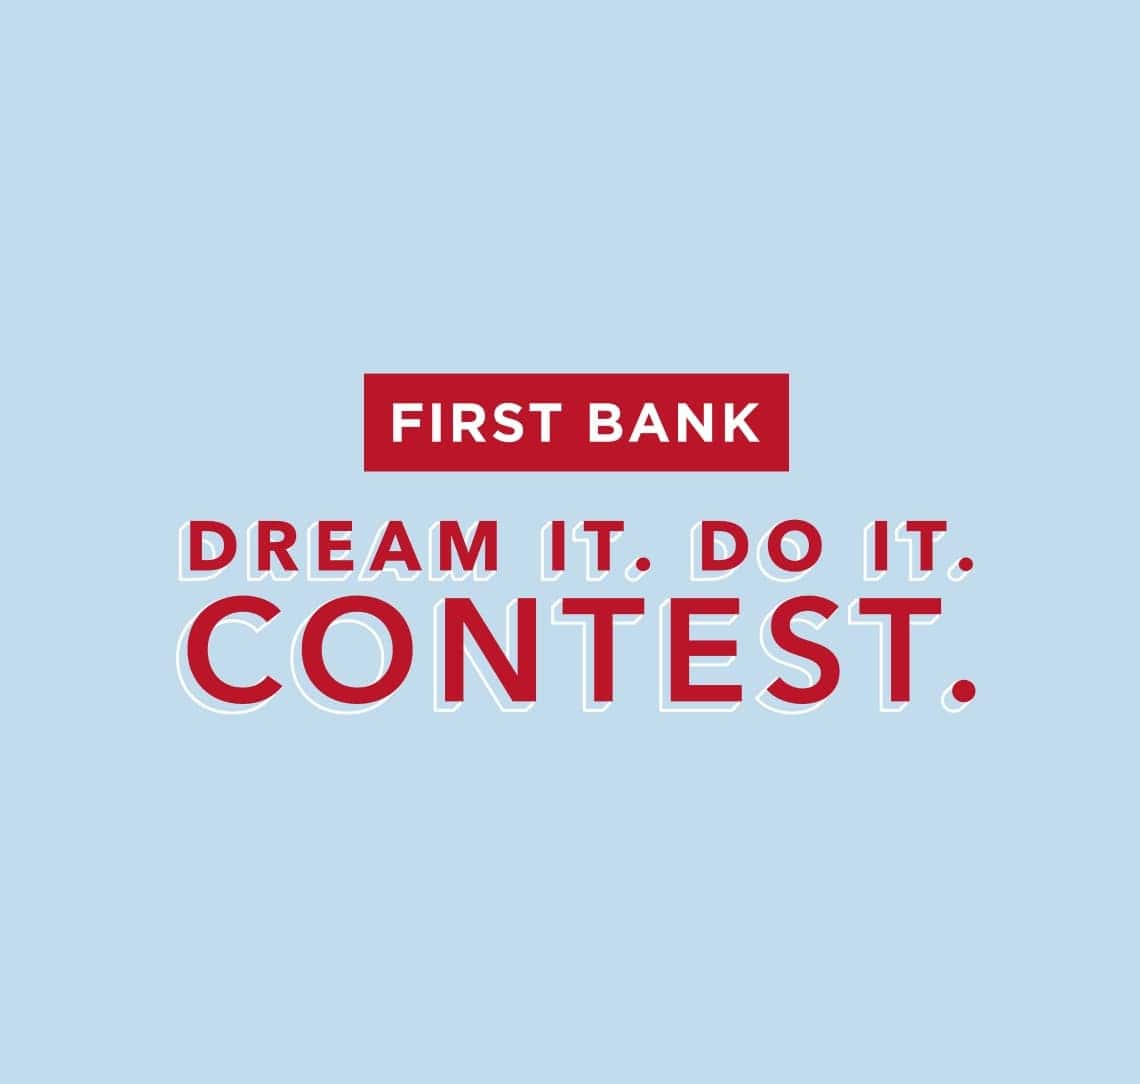 First Bank. Dream It. Do It. Contest It.